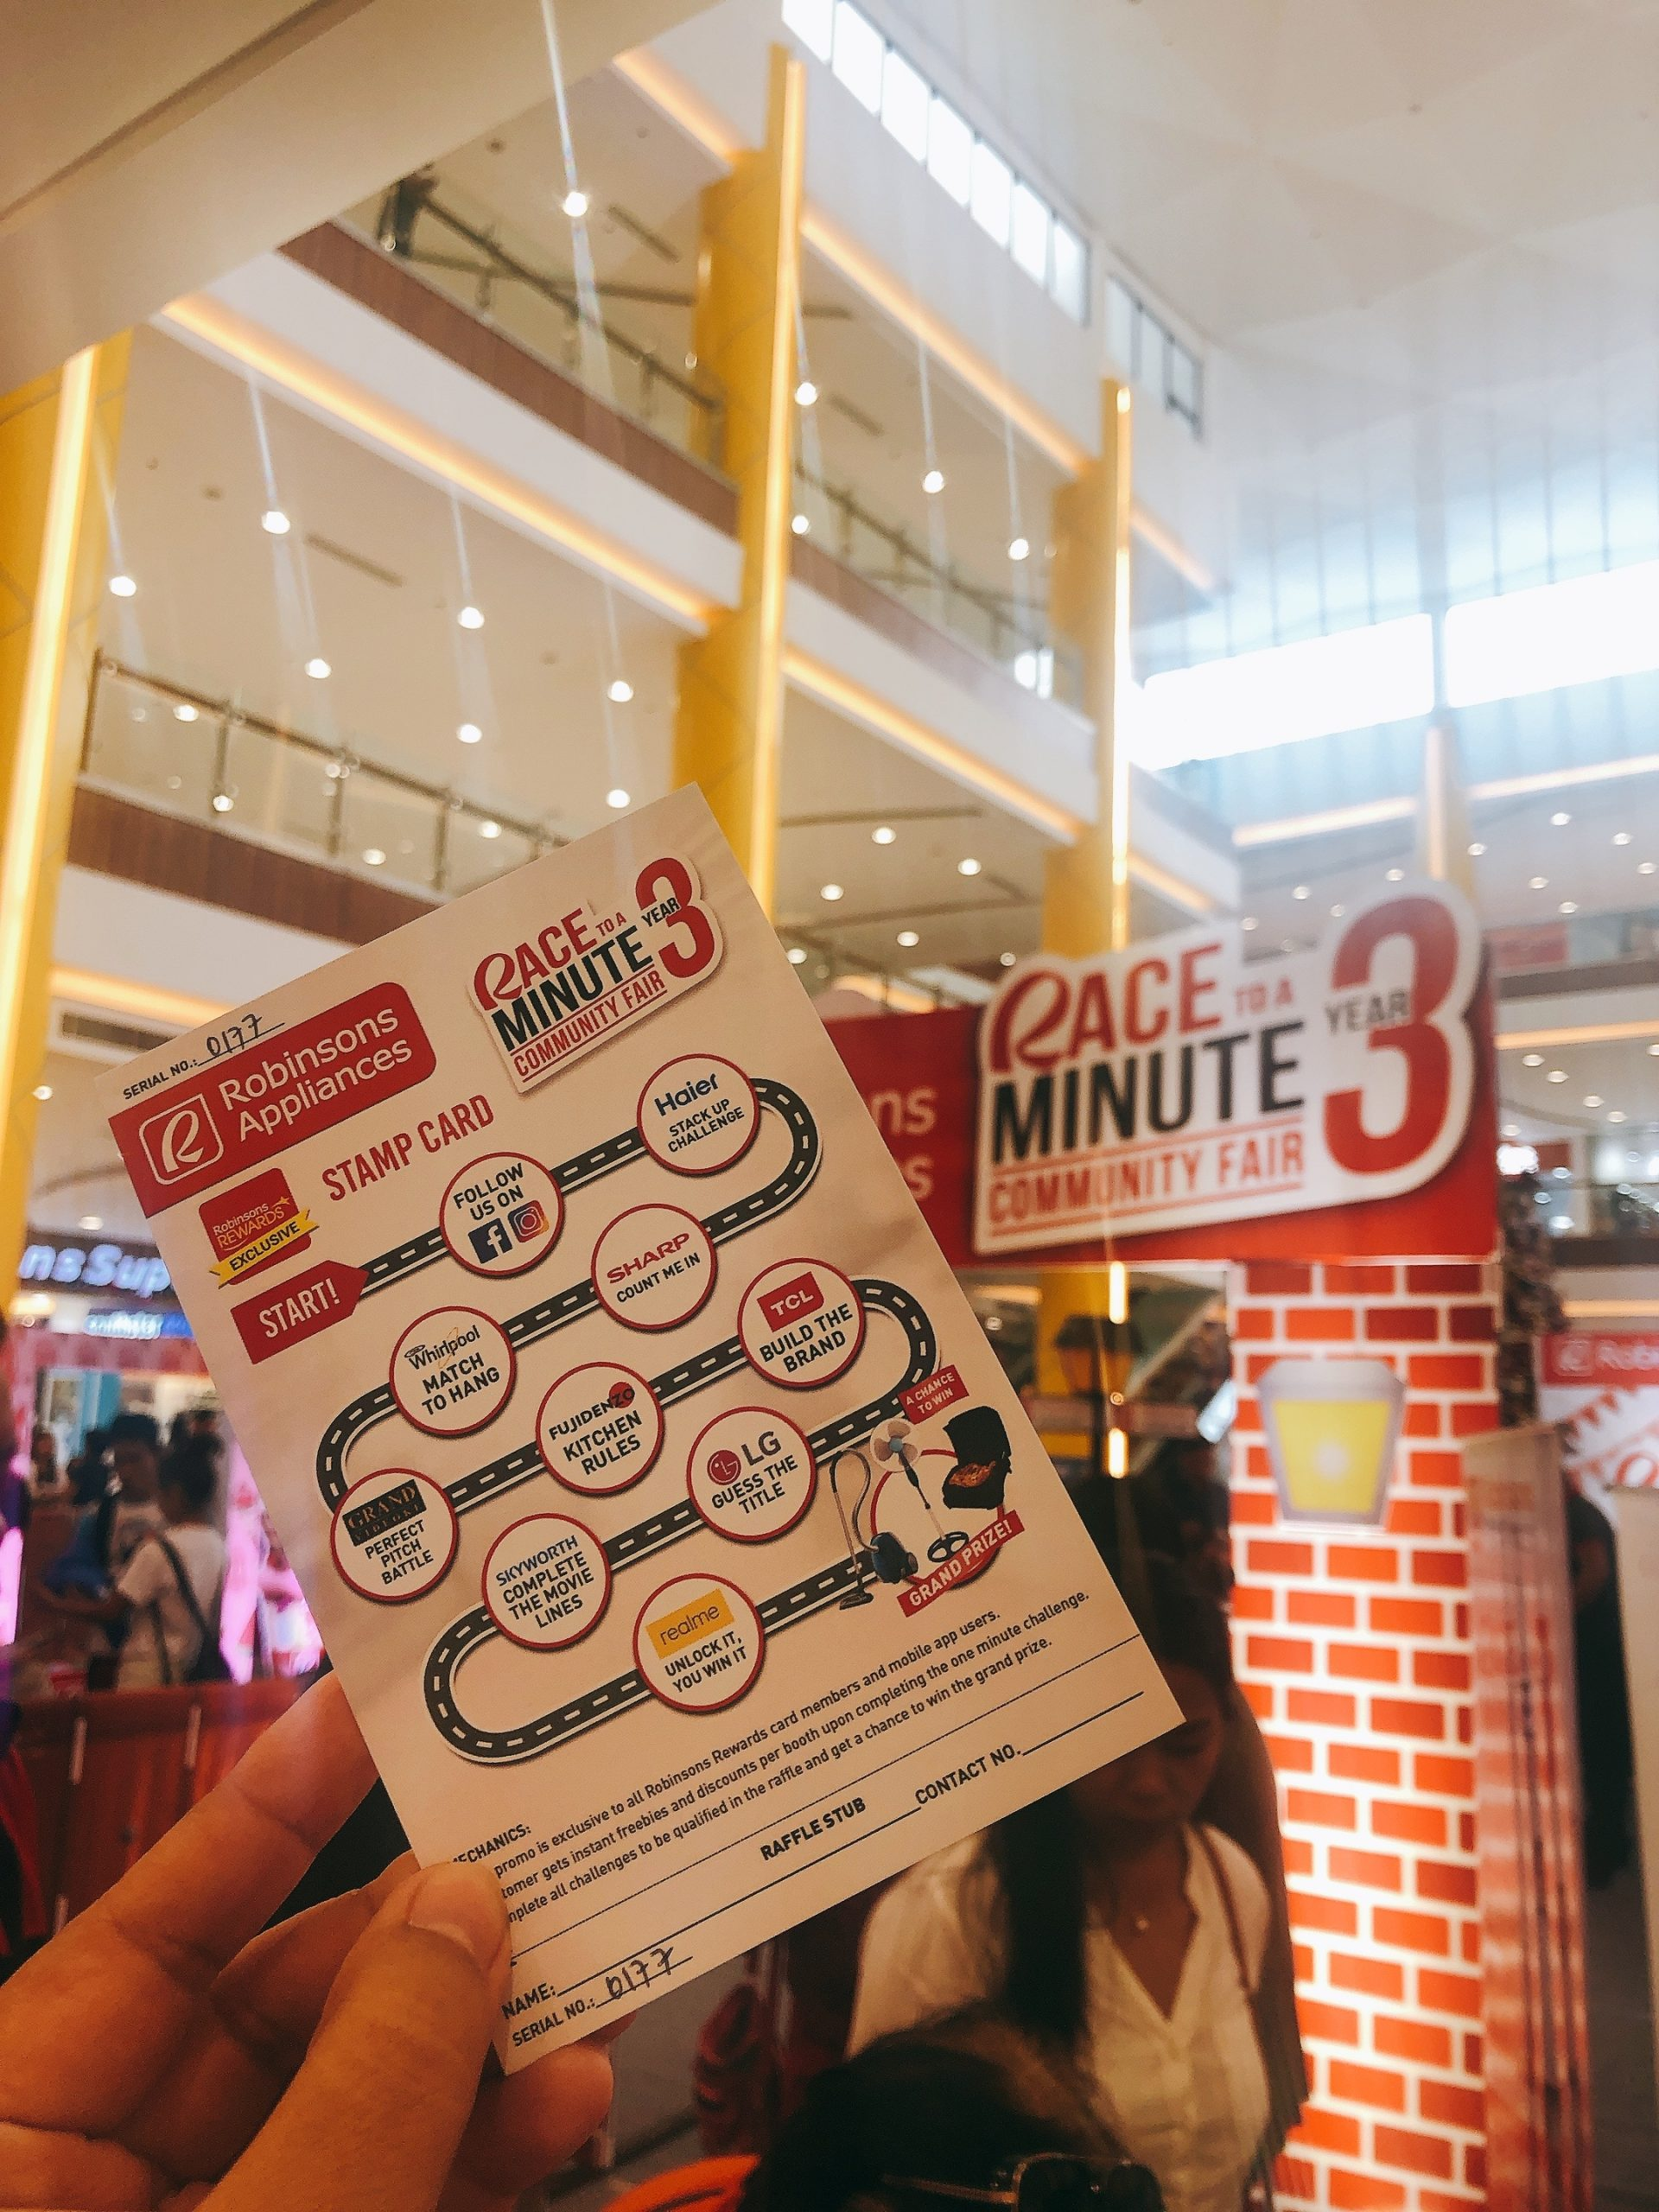 Robinsons Appliances made me do these fun 60-second challenges